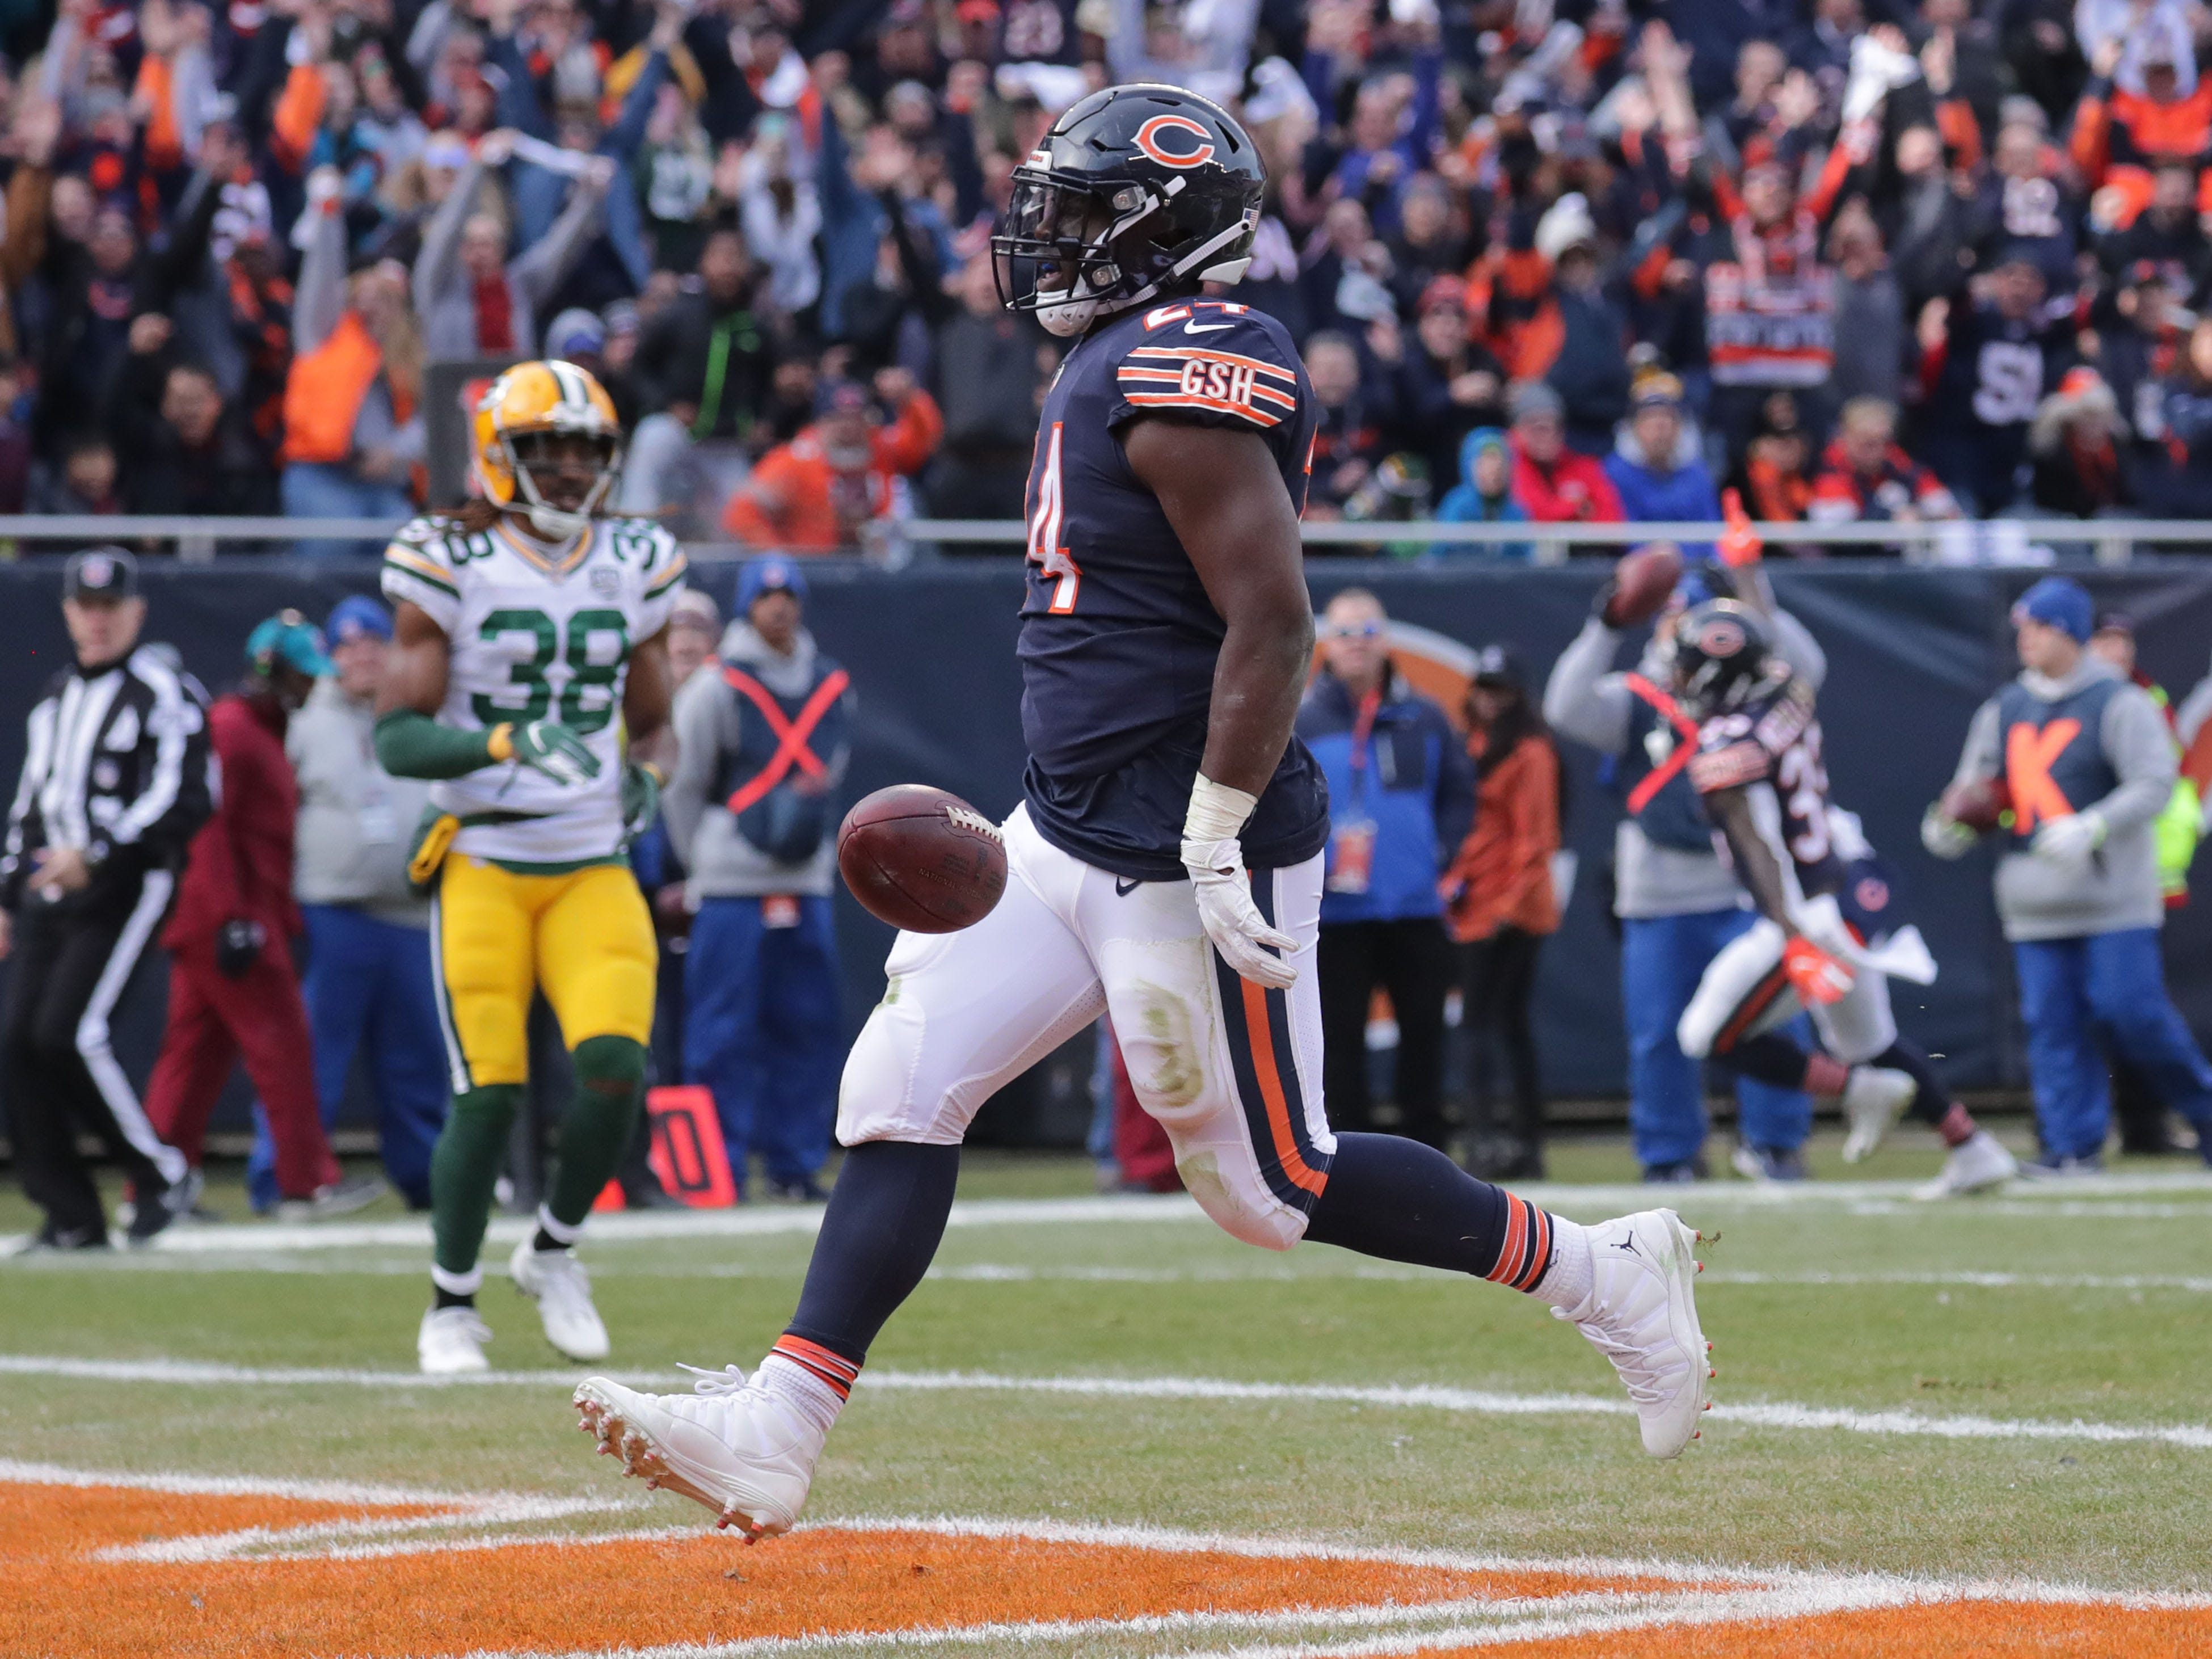 Chicago Bears' Jordan Howard scores a touchdown during the 1st half of the Green Bay Packers game against the Chicago Bears at Soldier Field Sunday, Dec. 16, 2018, in Chicago. Photo by Mike De Sisti / The Milwaukee Journal Sentinel